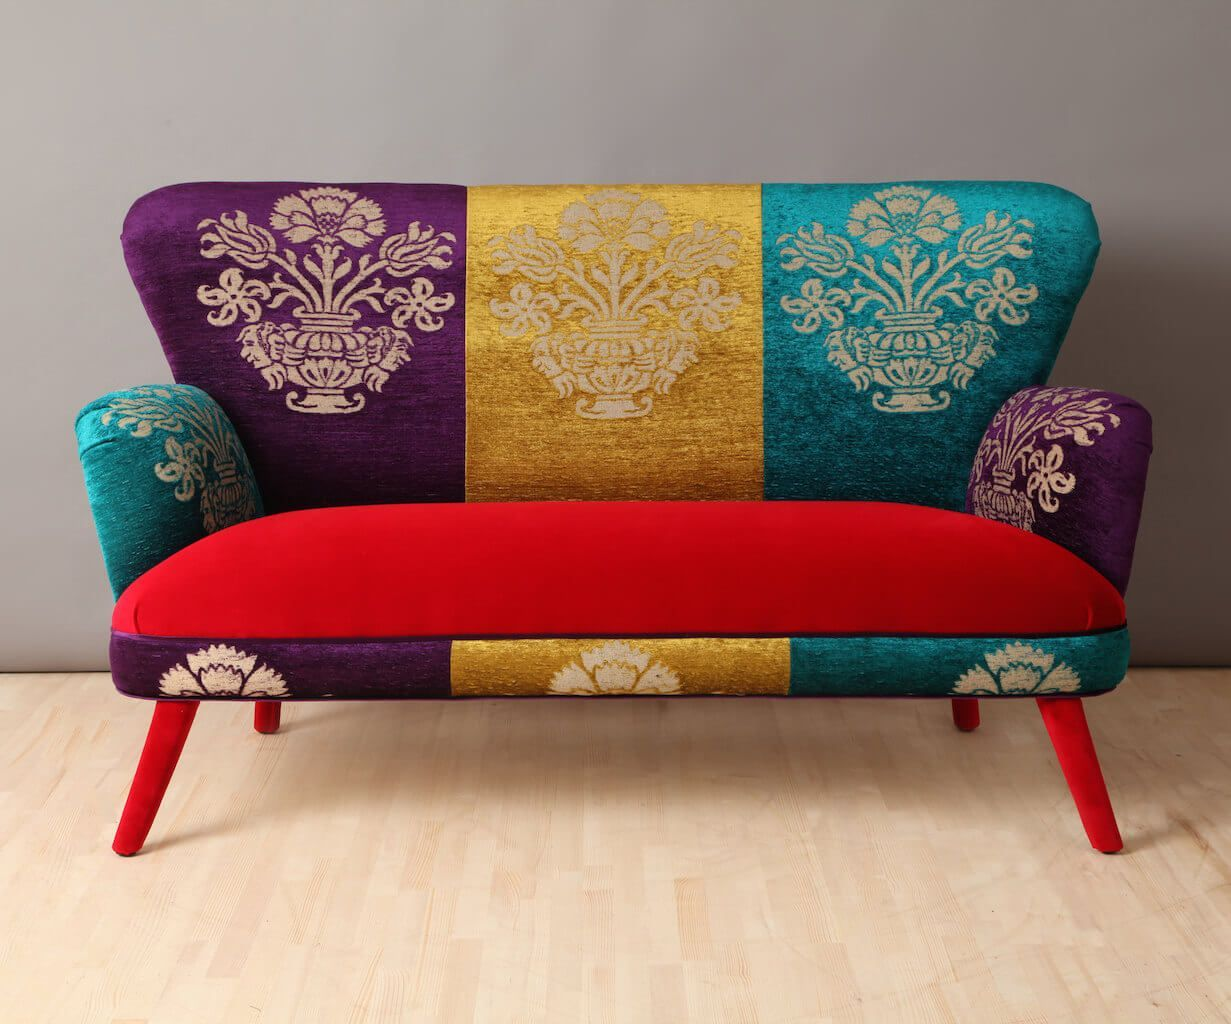 New Home Decor Trends For 2018 Colorful Couch Trending Decor